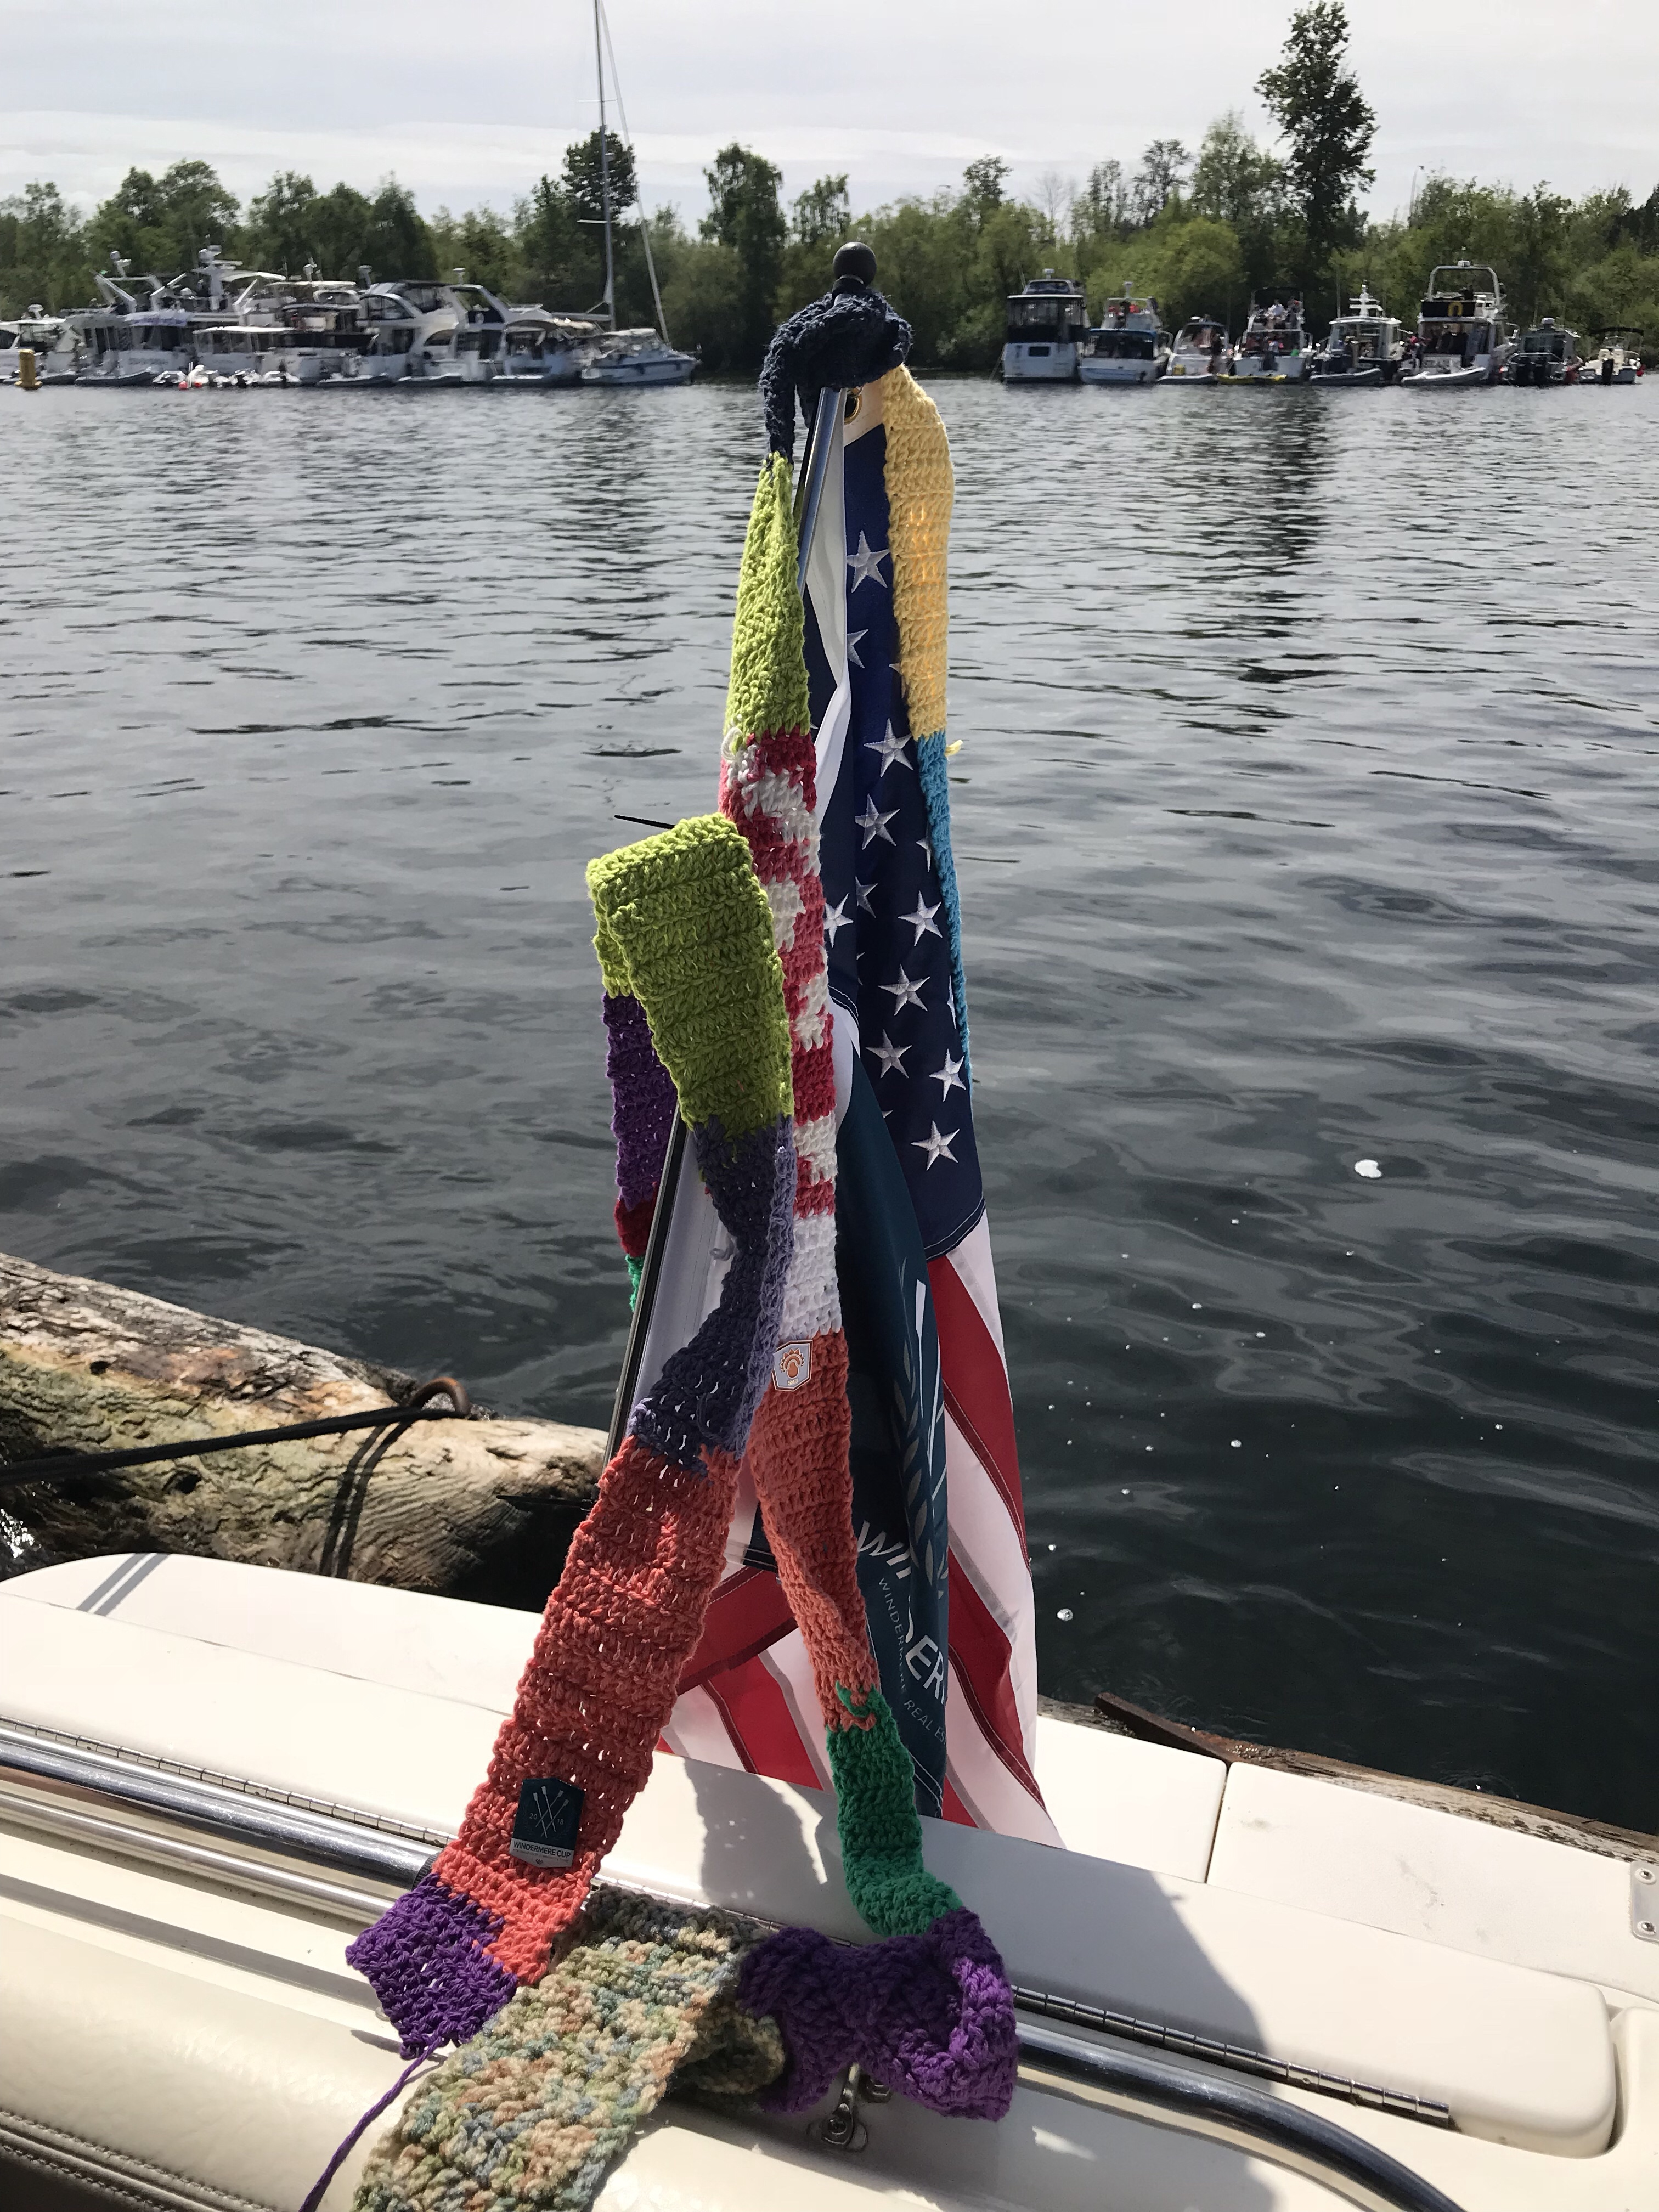 The Ugly Scarf visits the 2018 Windermere Cup